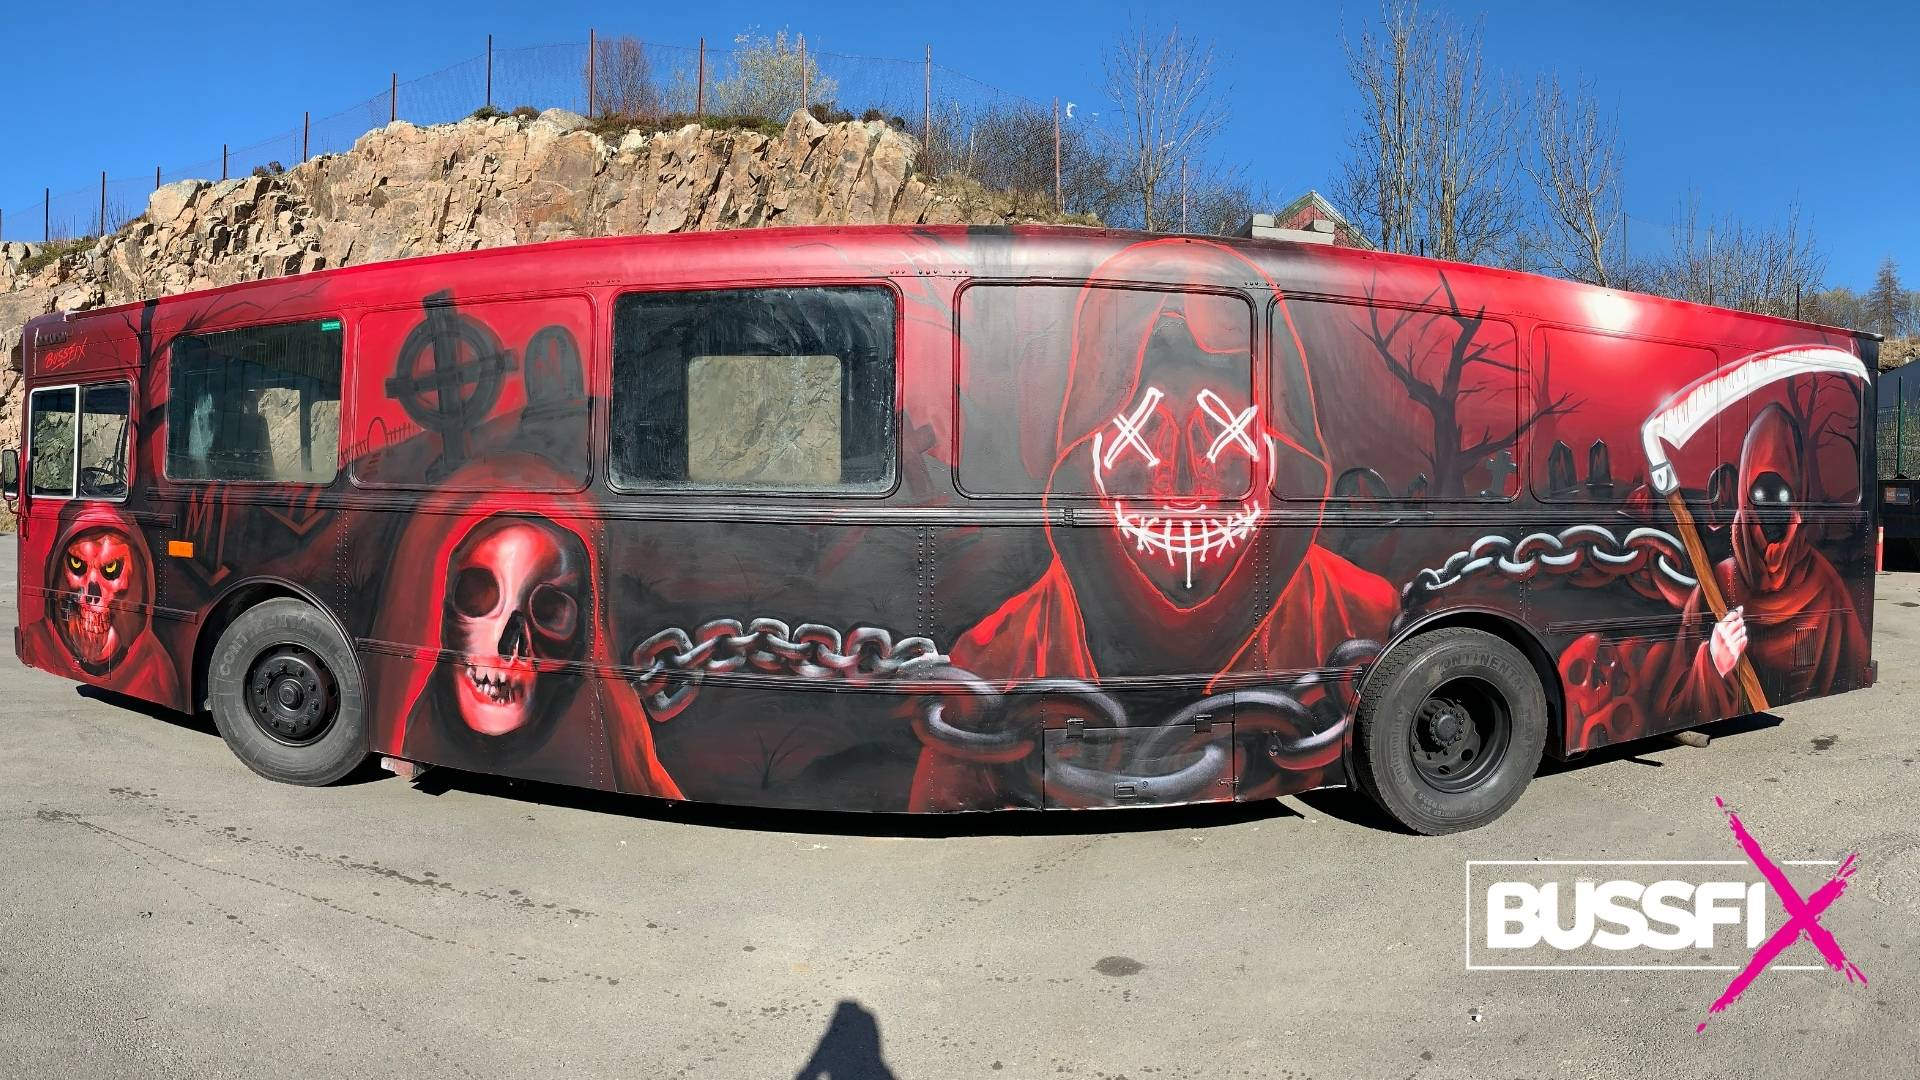 Graffiti russebuss Nightmare 2019